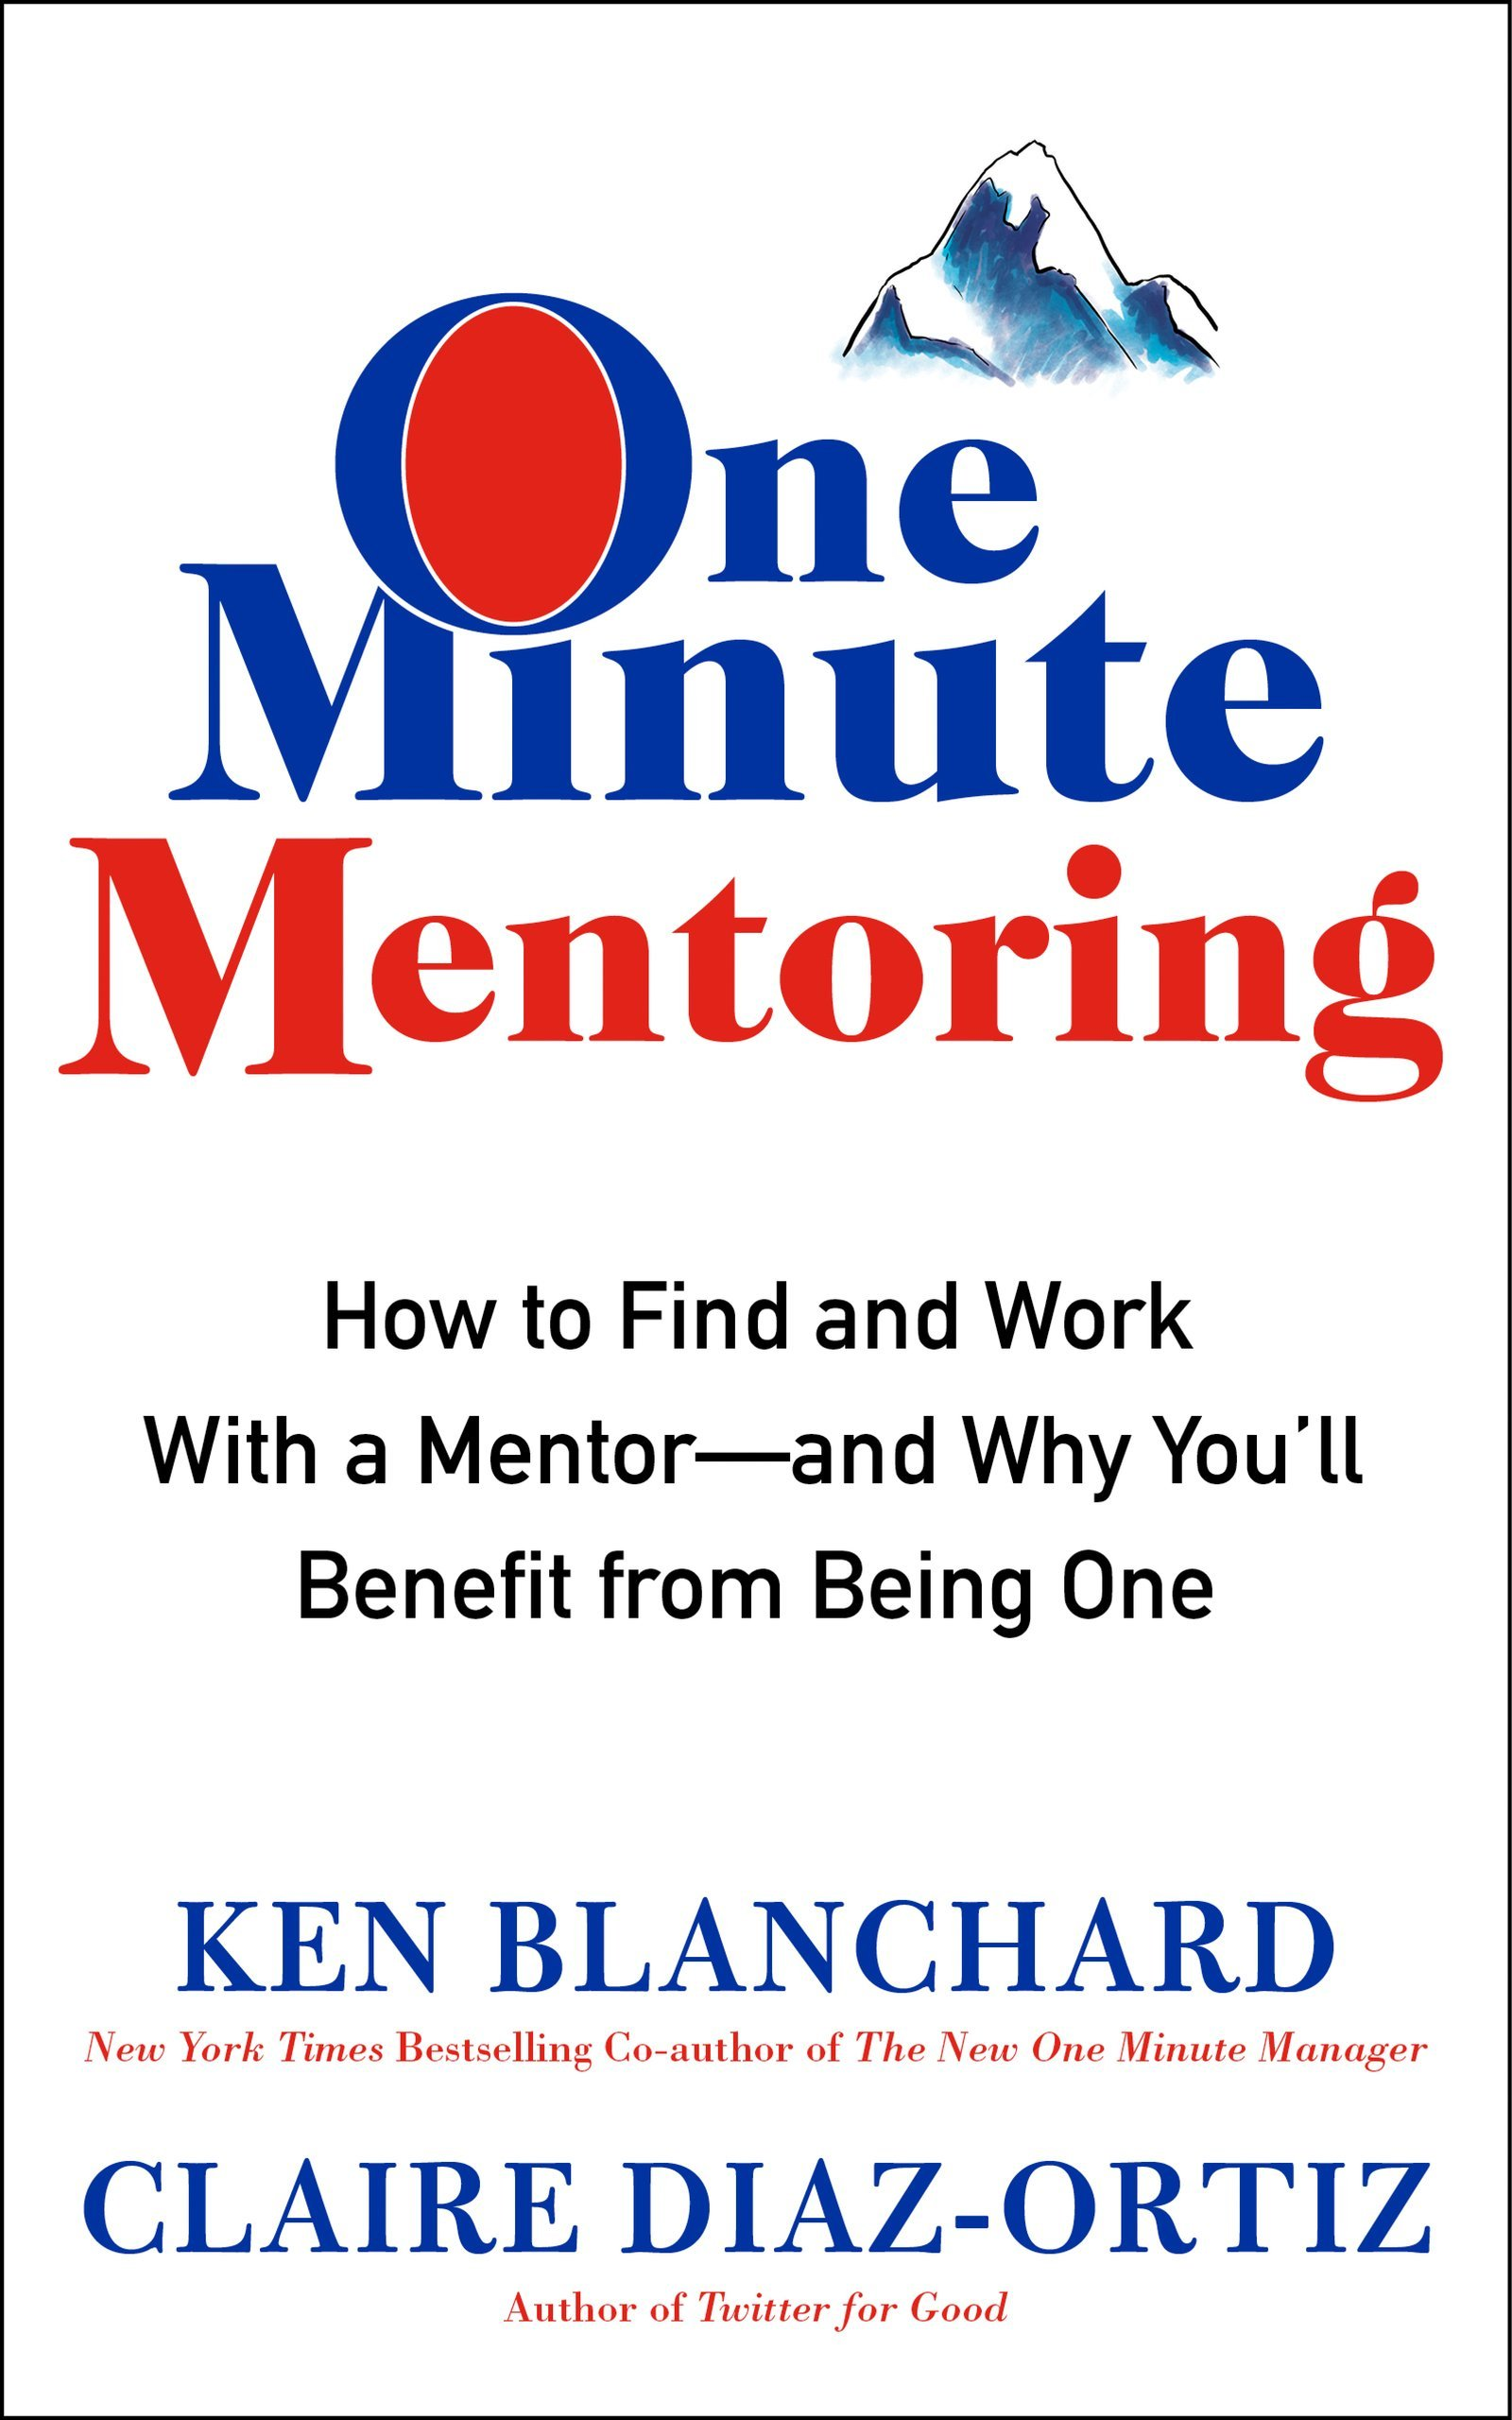 one minute mentoring how to and work a mentor and why one minute mentoring how to and work a mentor and why you ll benefit from being one ken blanchard claire diaz ortiz 9780062429308